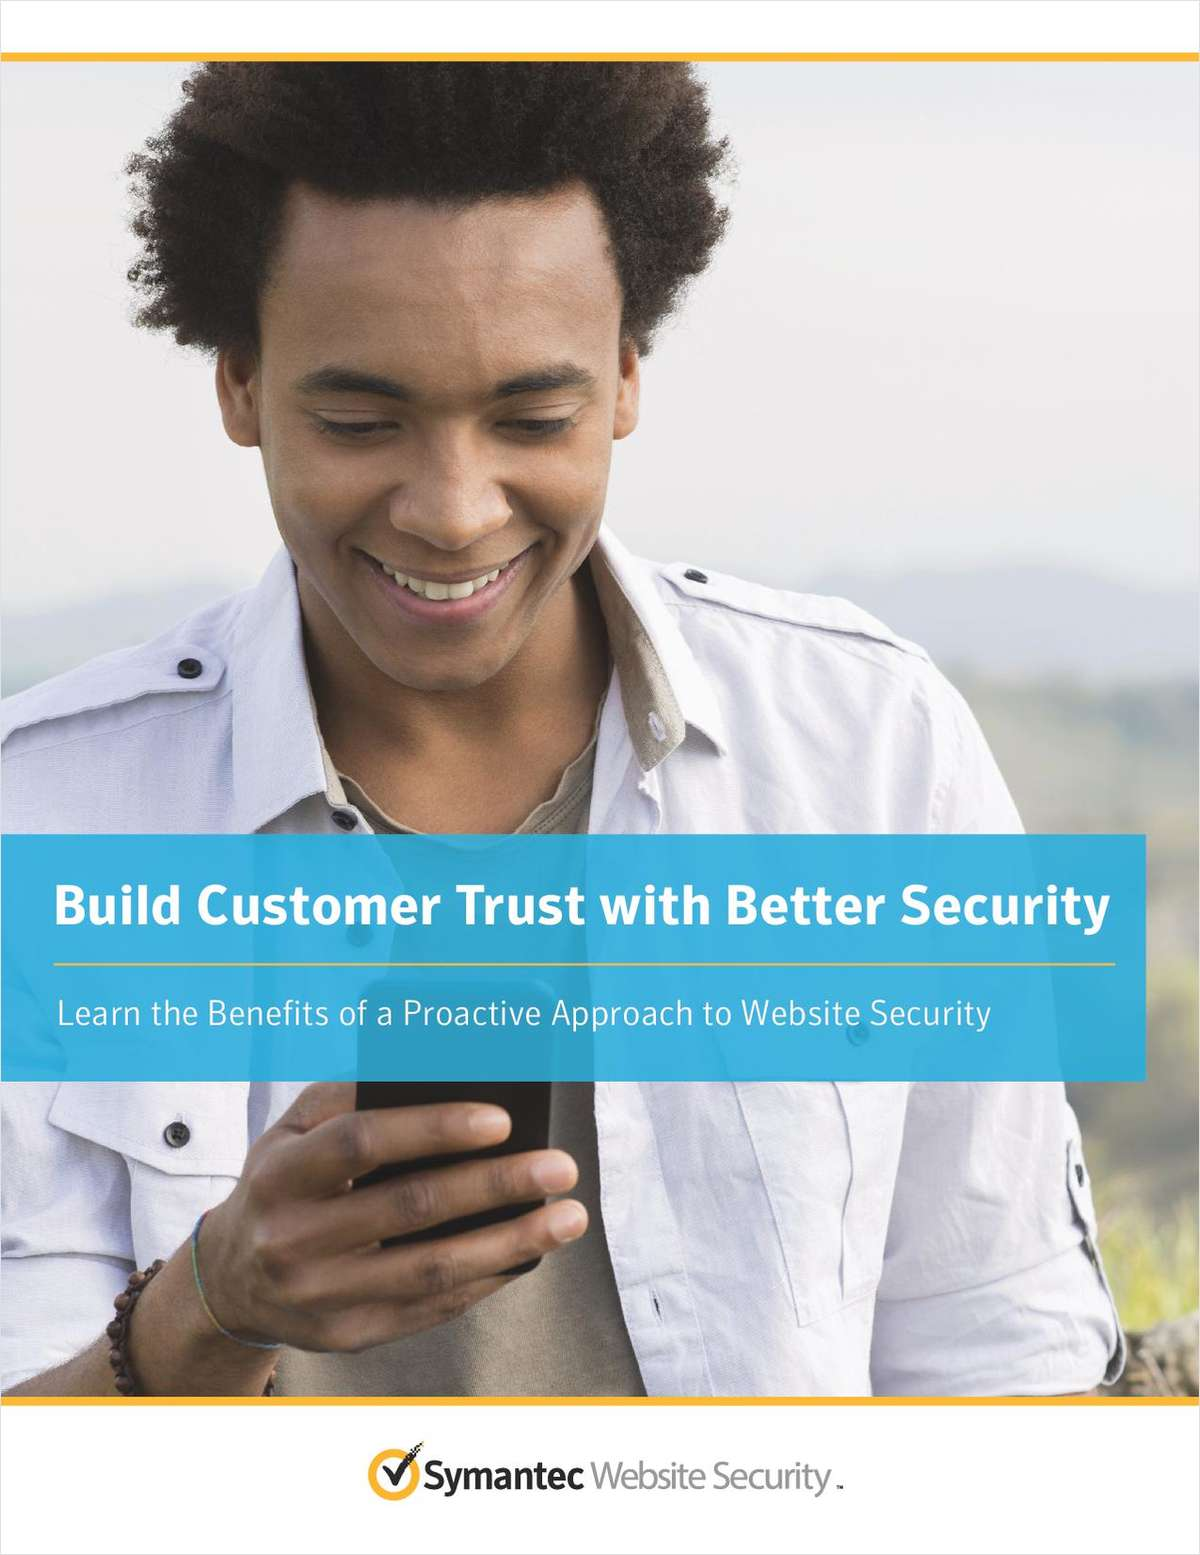 Build Customer Trust with Better Security